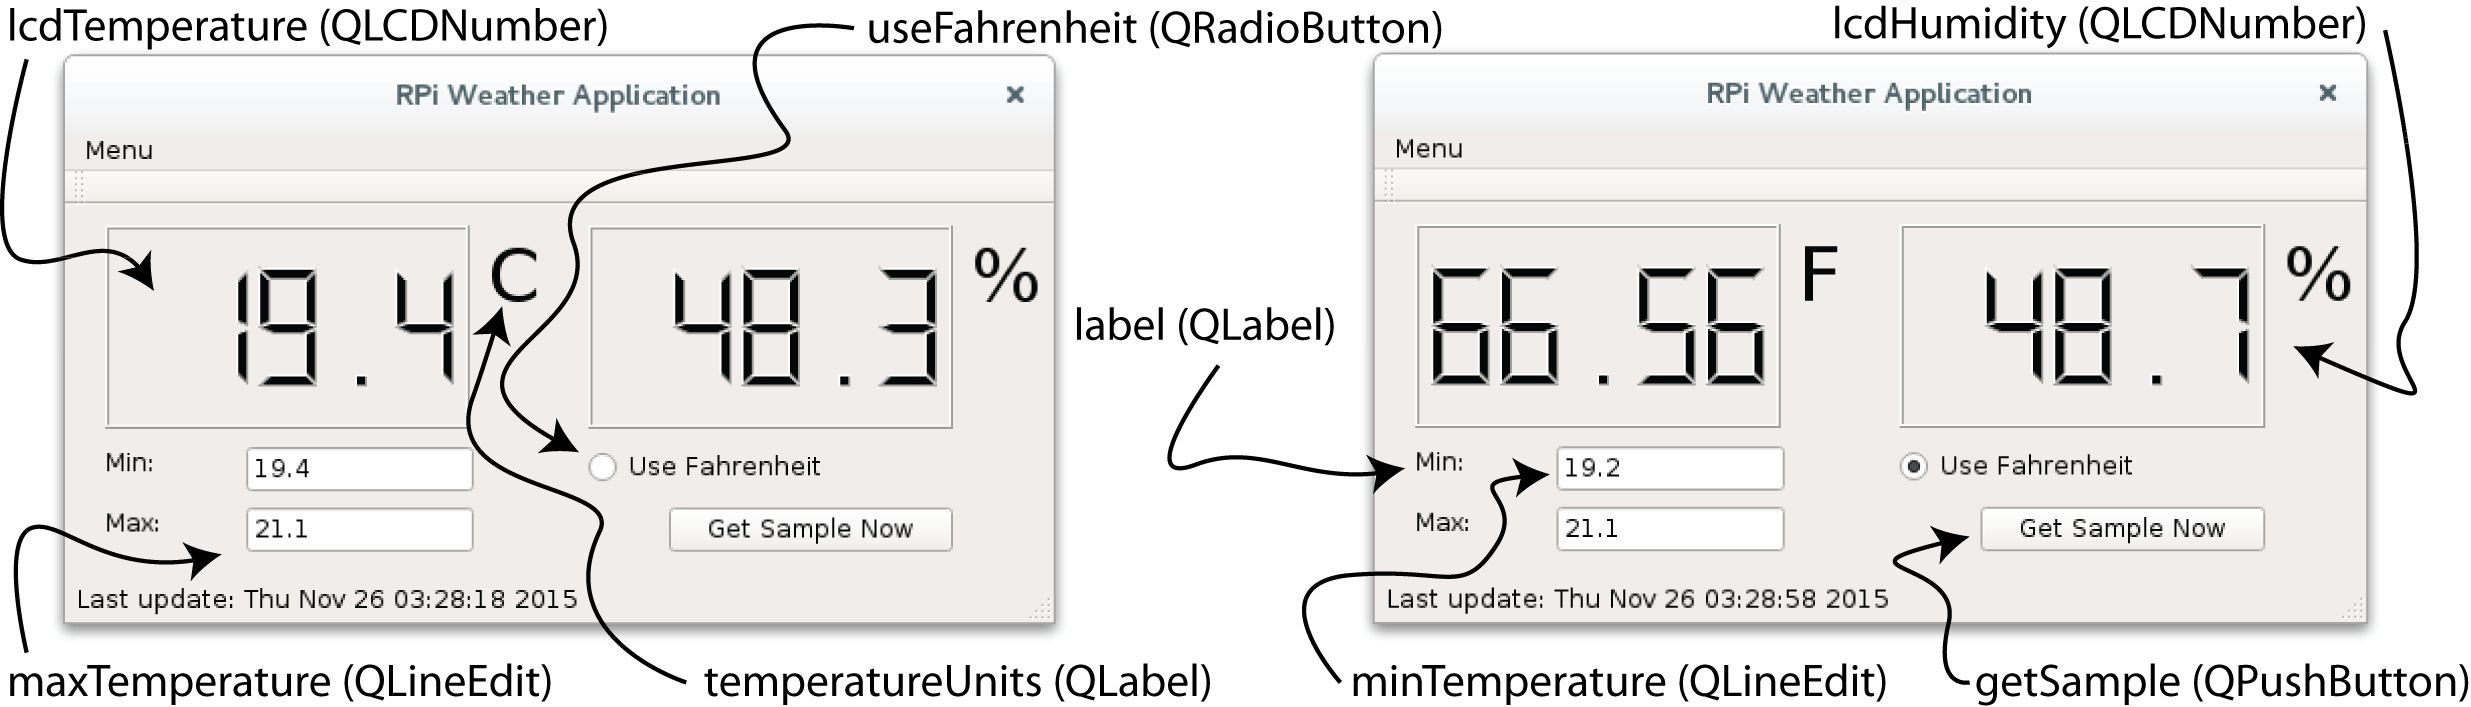 Chapter 14 Raspberry Pi With A Rich User Interface Exploring Wiringpi Install The Qt Weather Sensor Gui Application Components